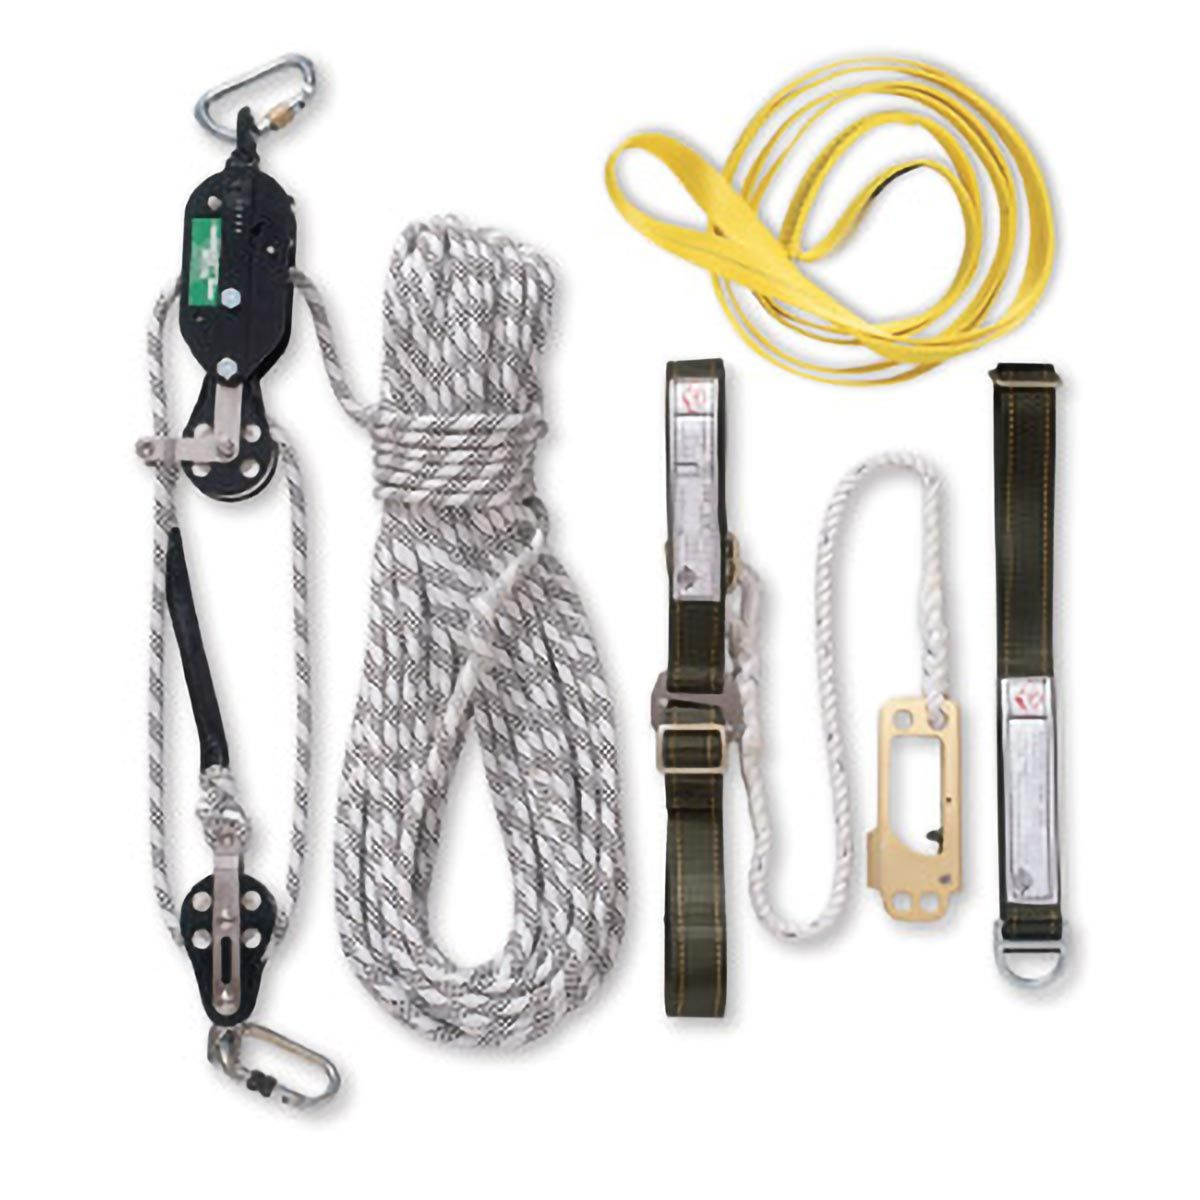 Miller 15m Rescue Master Haul kit